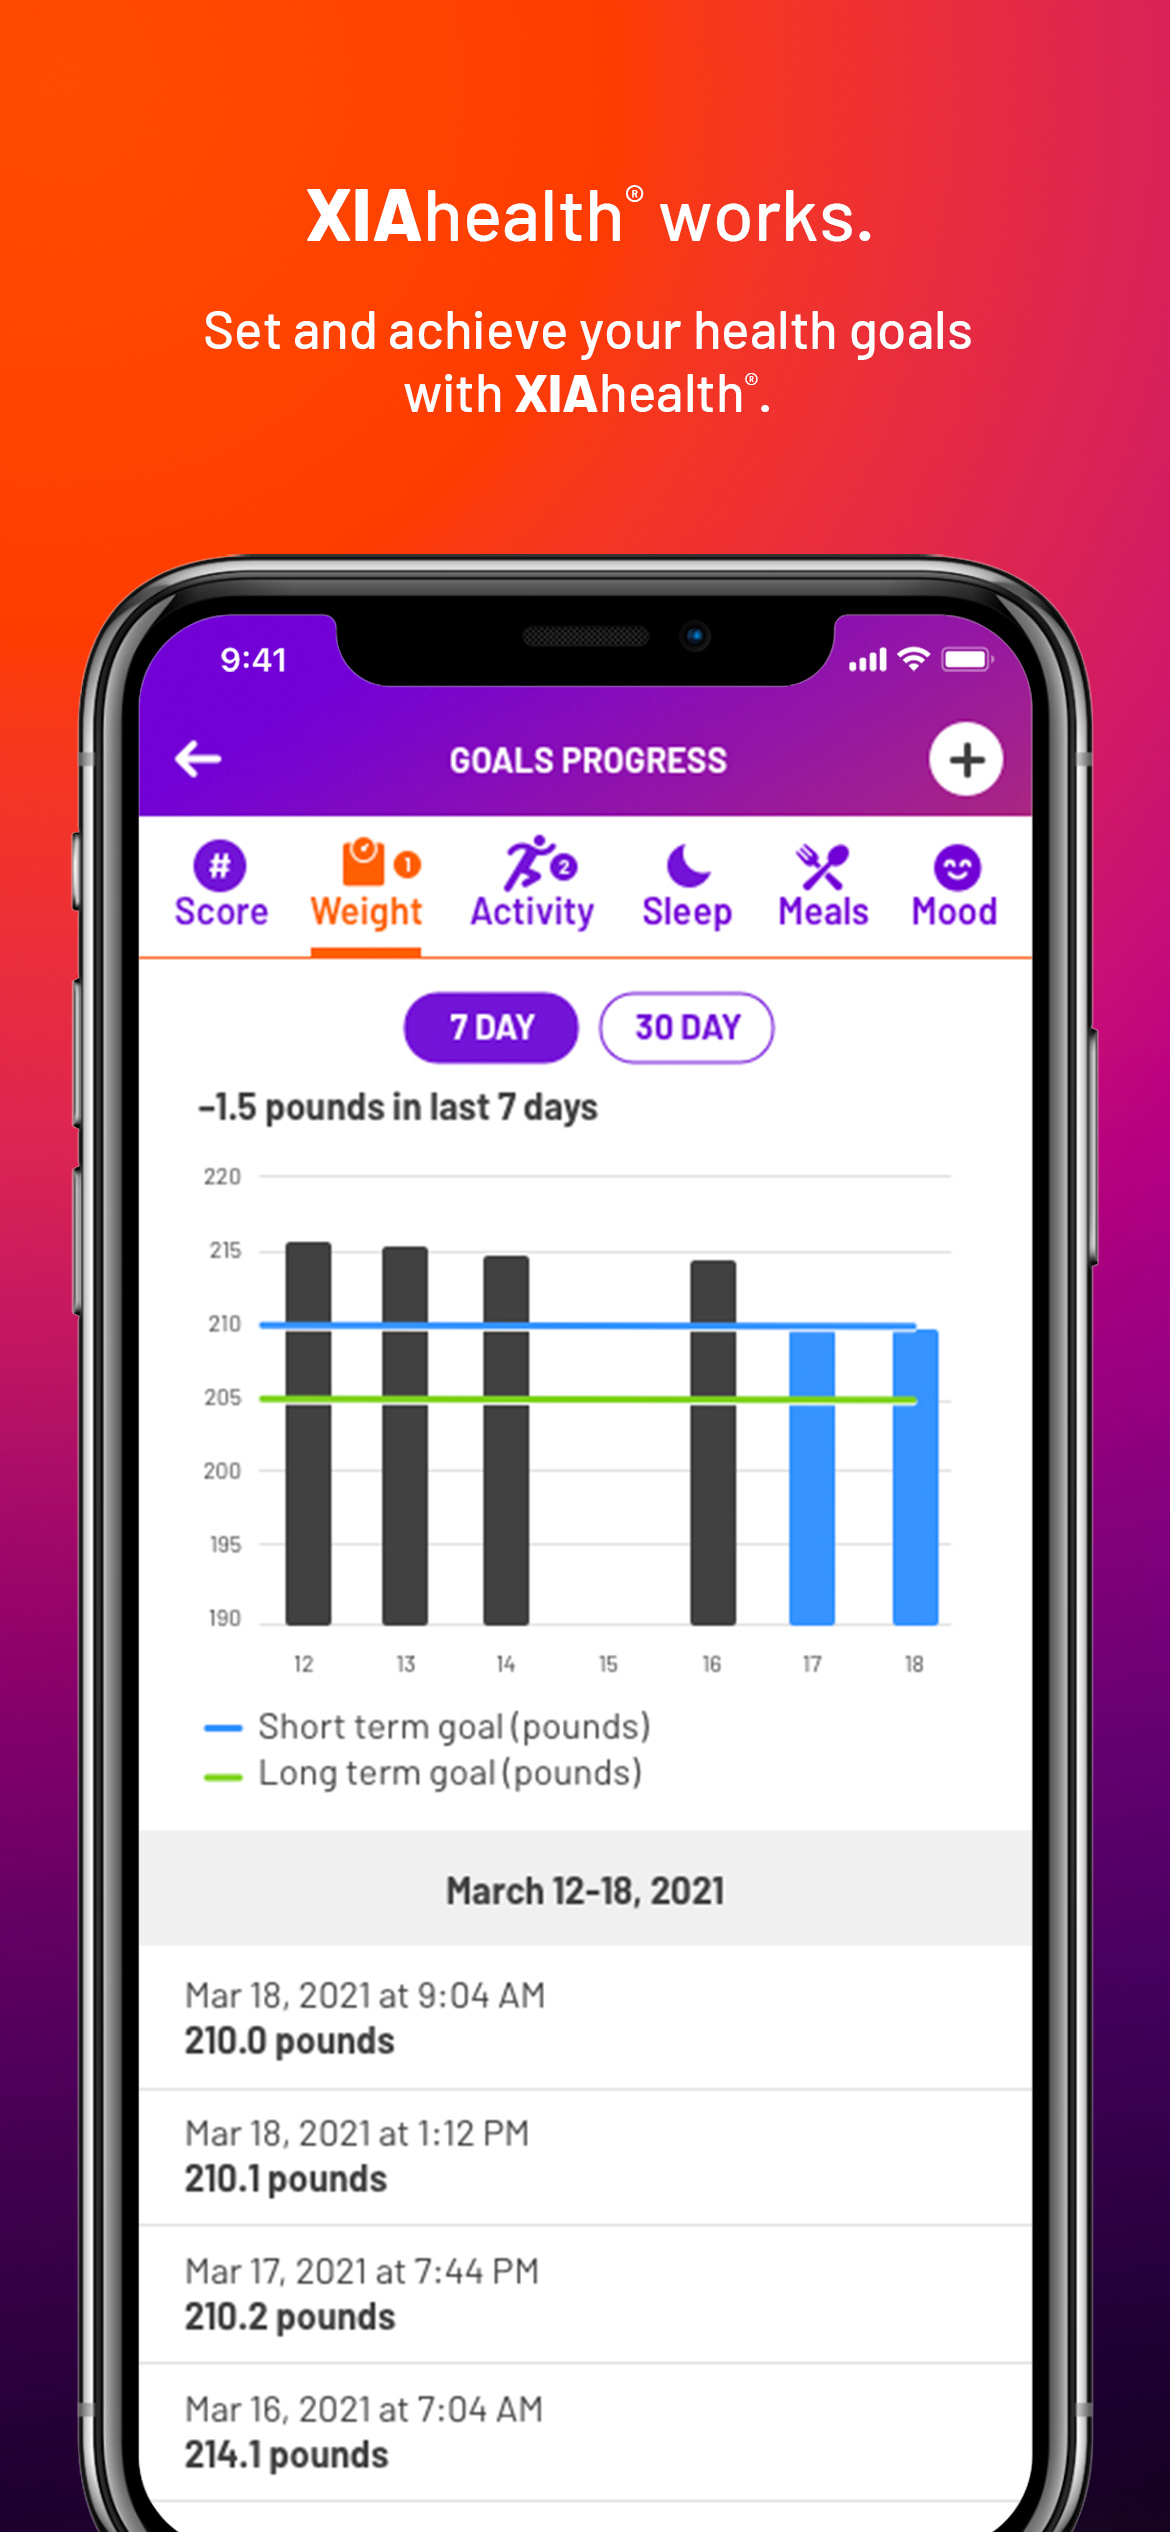 Patients set health goals and track to their goals by connecting directly to their personal tracking devices or manually logging. Care Teams can see their data displayed in actionable, digestible charts in the Care Team application.